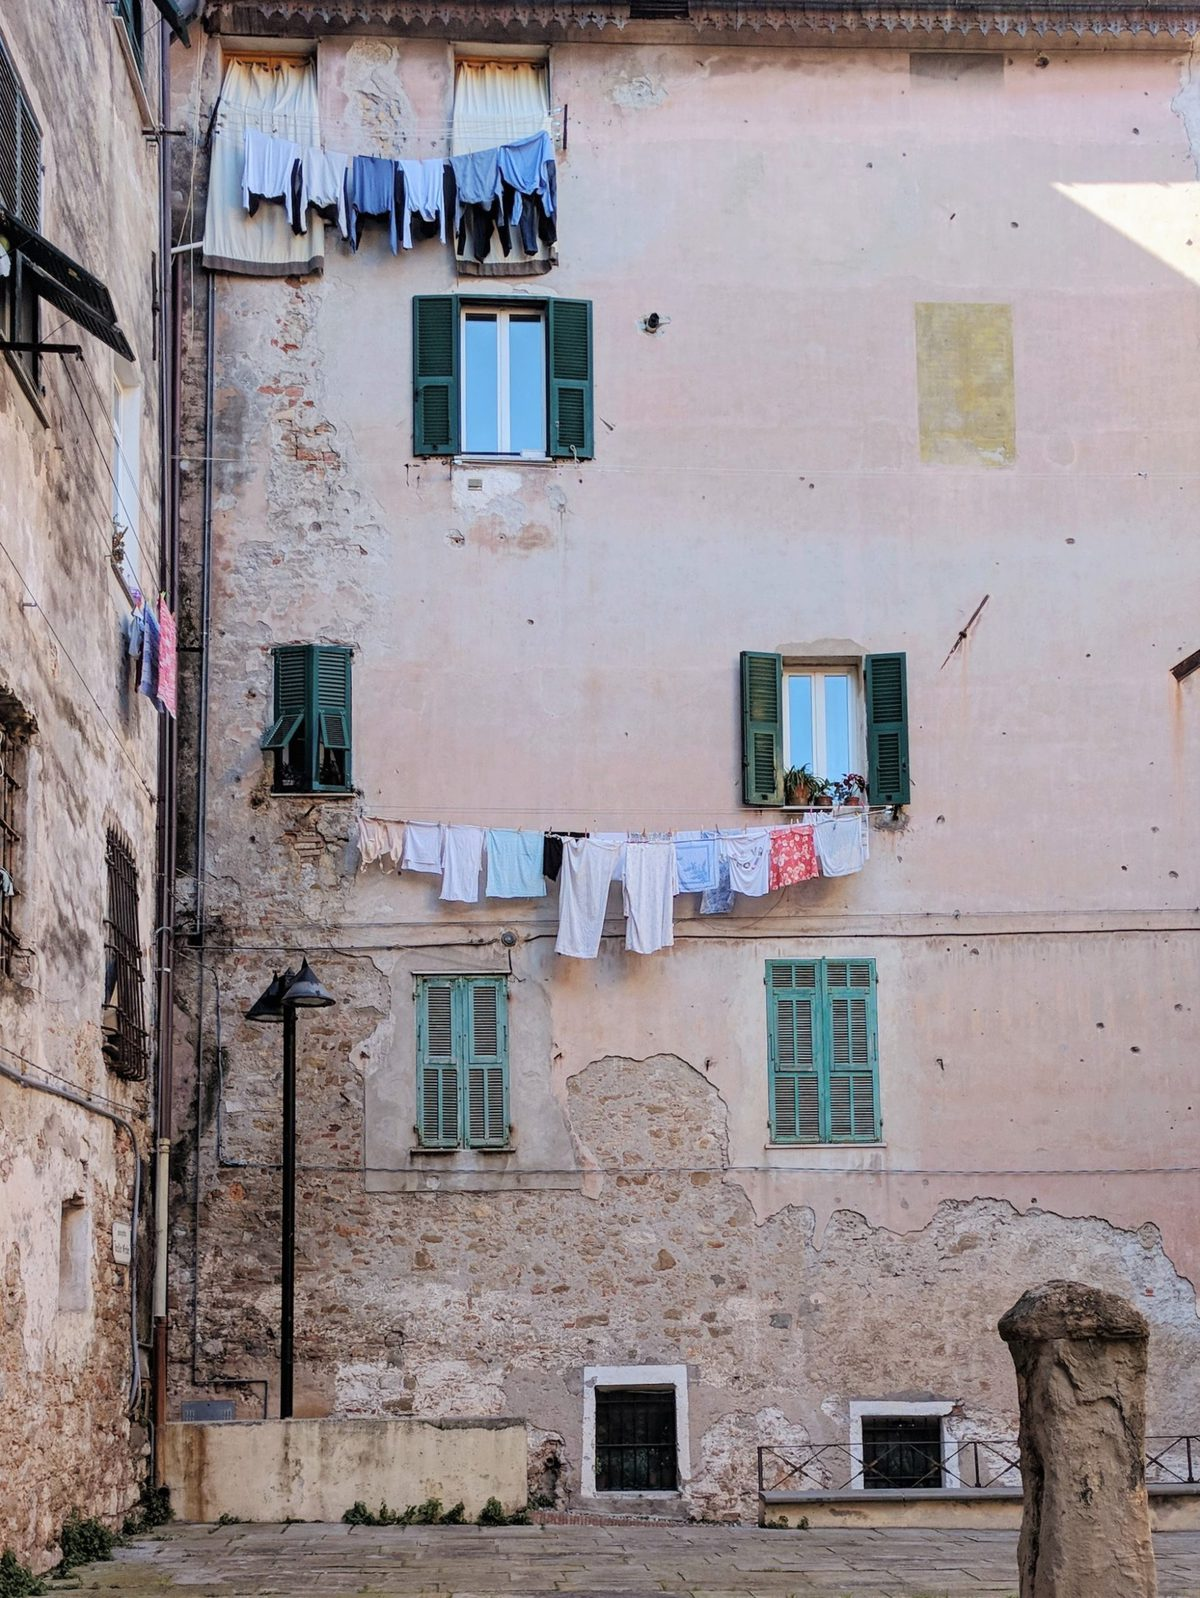 Laundry hanging on clotheslines outside of an old pink building in Ventimiglia, Italy